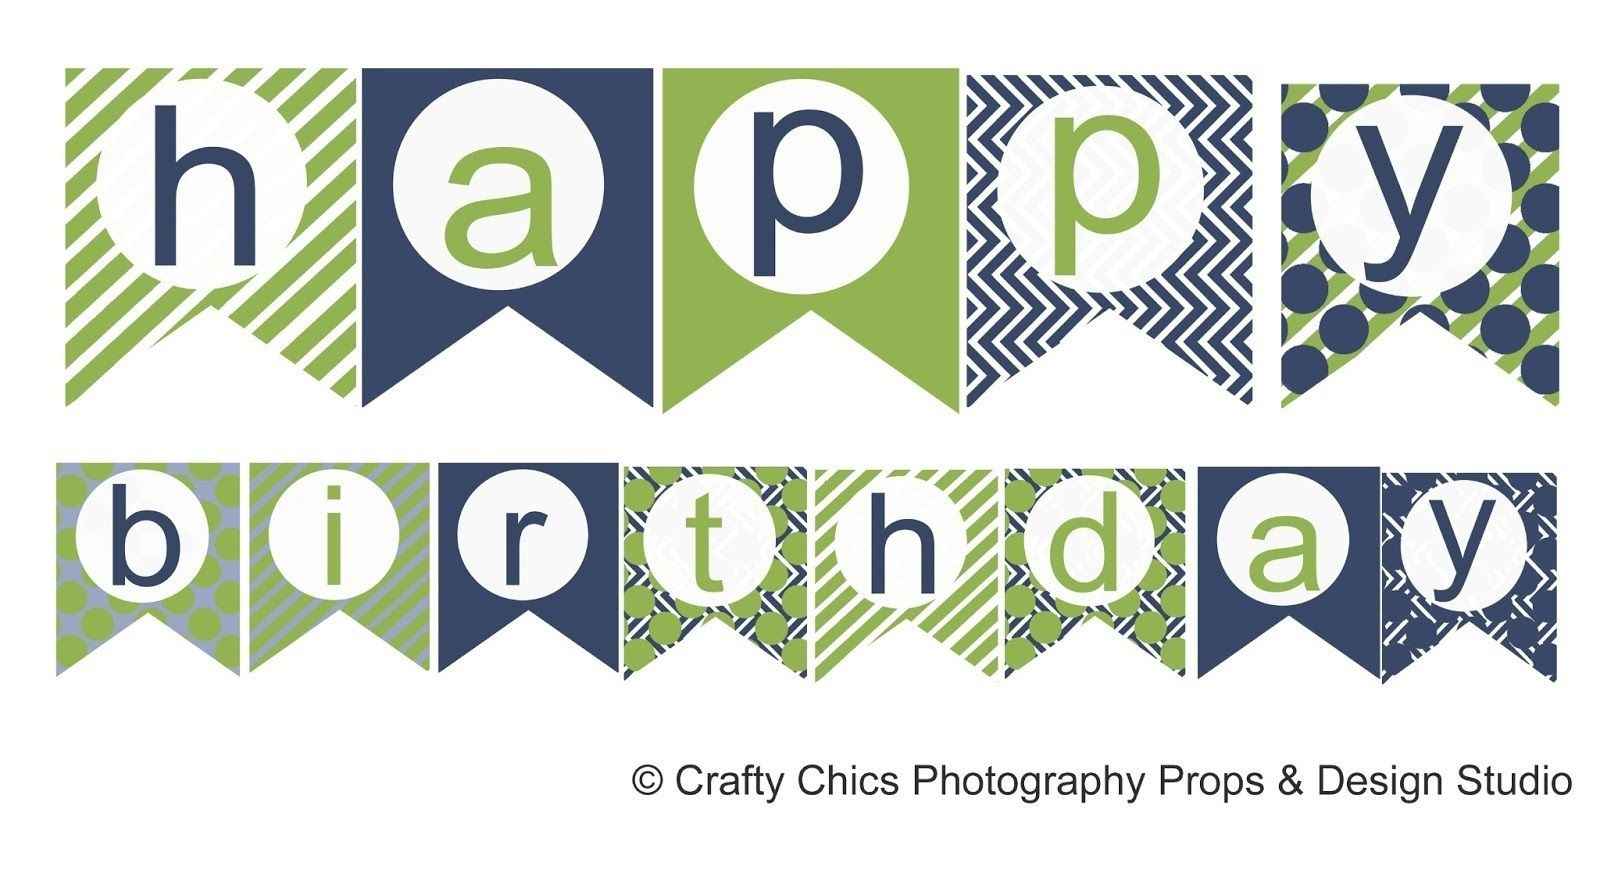 happy birthday poster free template ; free-happy-birthday-banner-printable-home-design-ideas-with-free-printable-happy-birthday-banner-templates